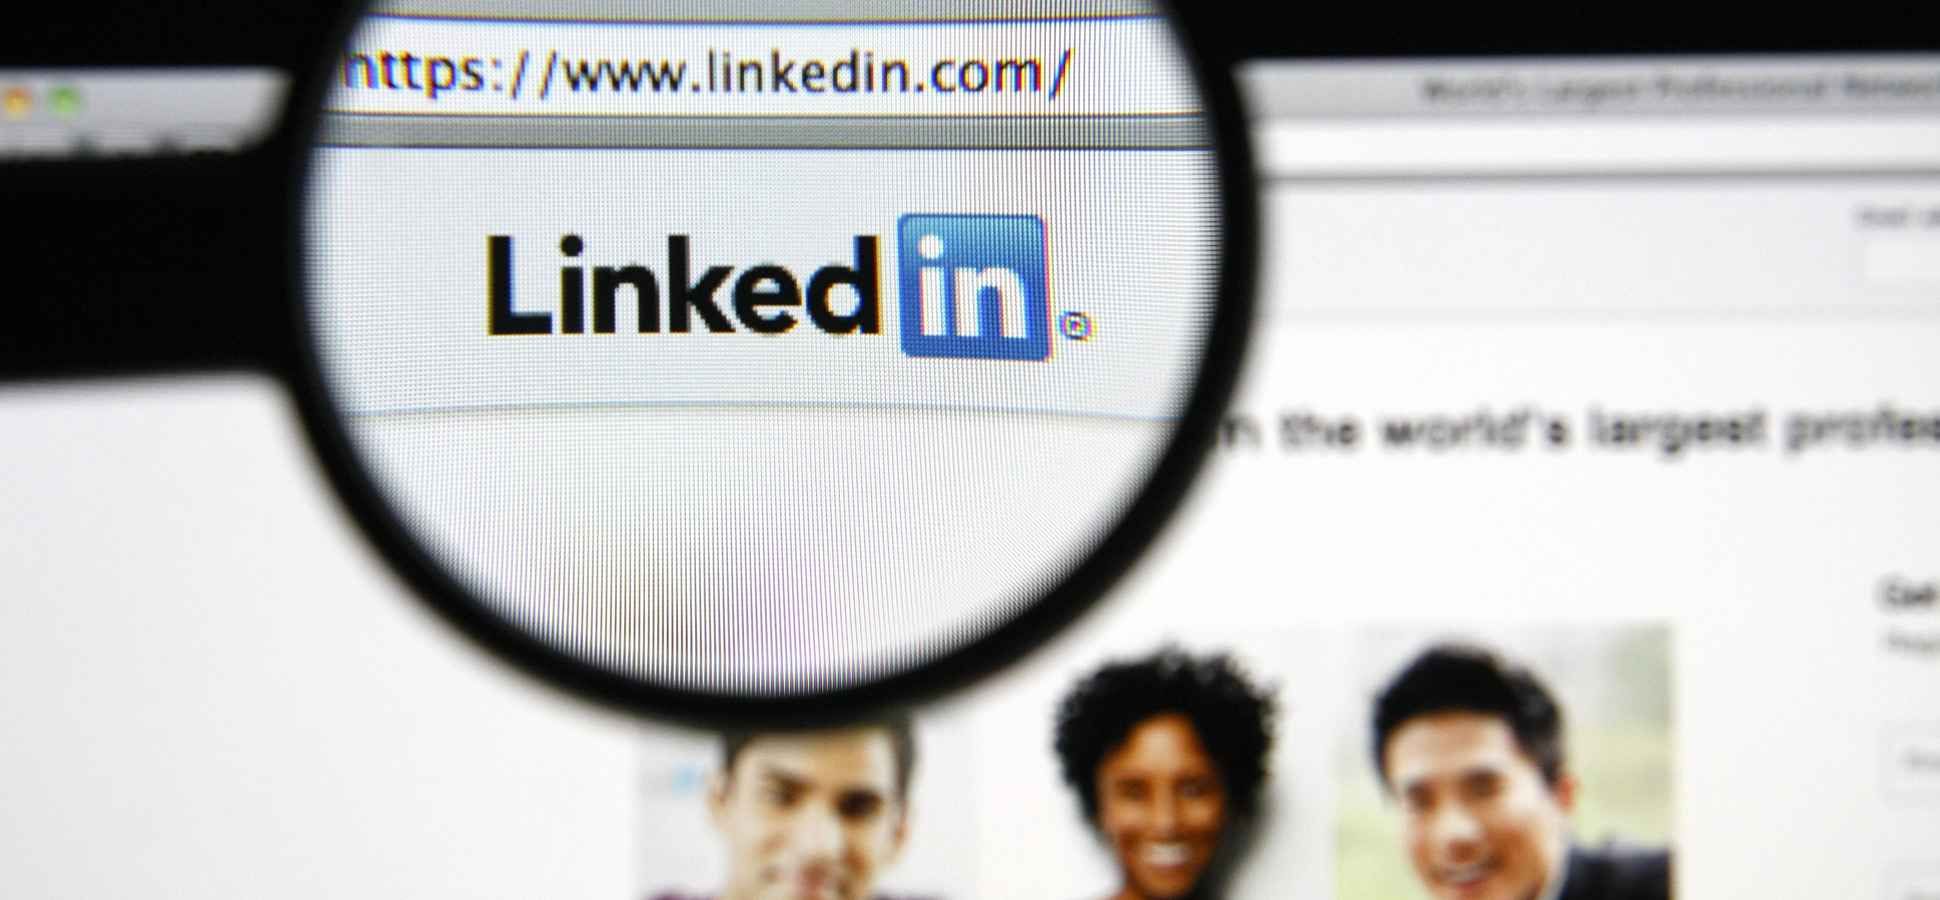 How to Tell Your Professional Story on LinkedIn